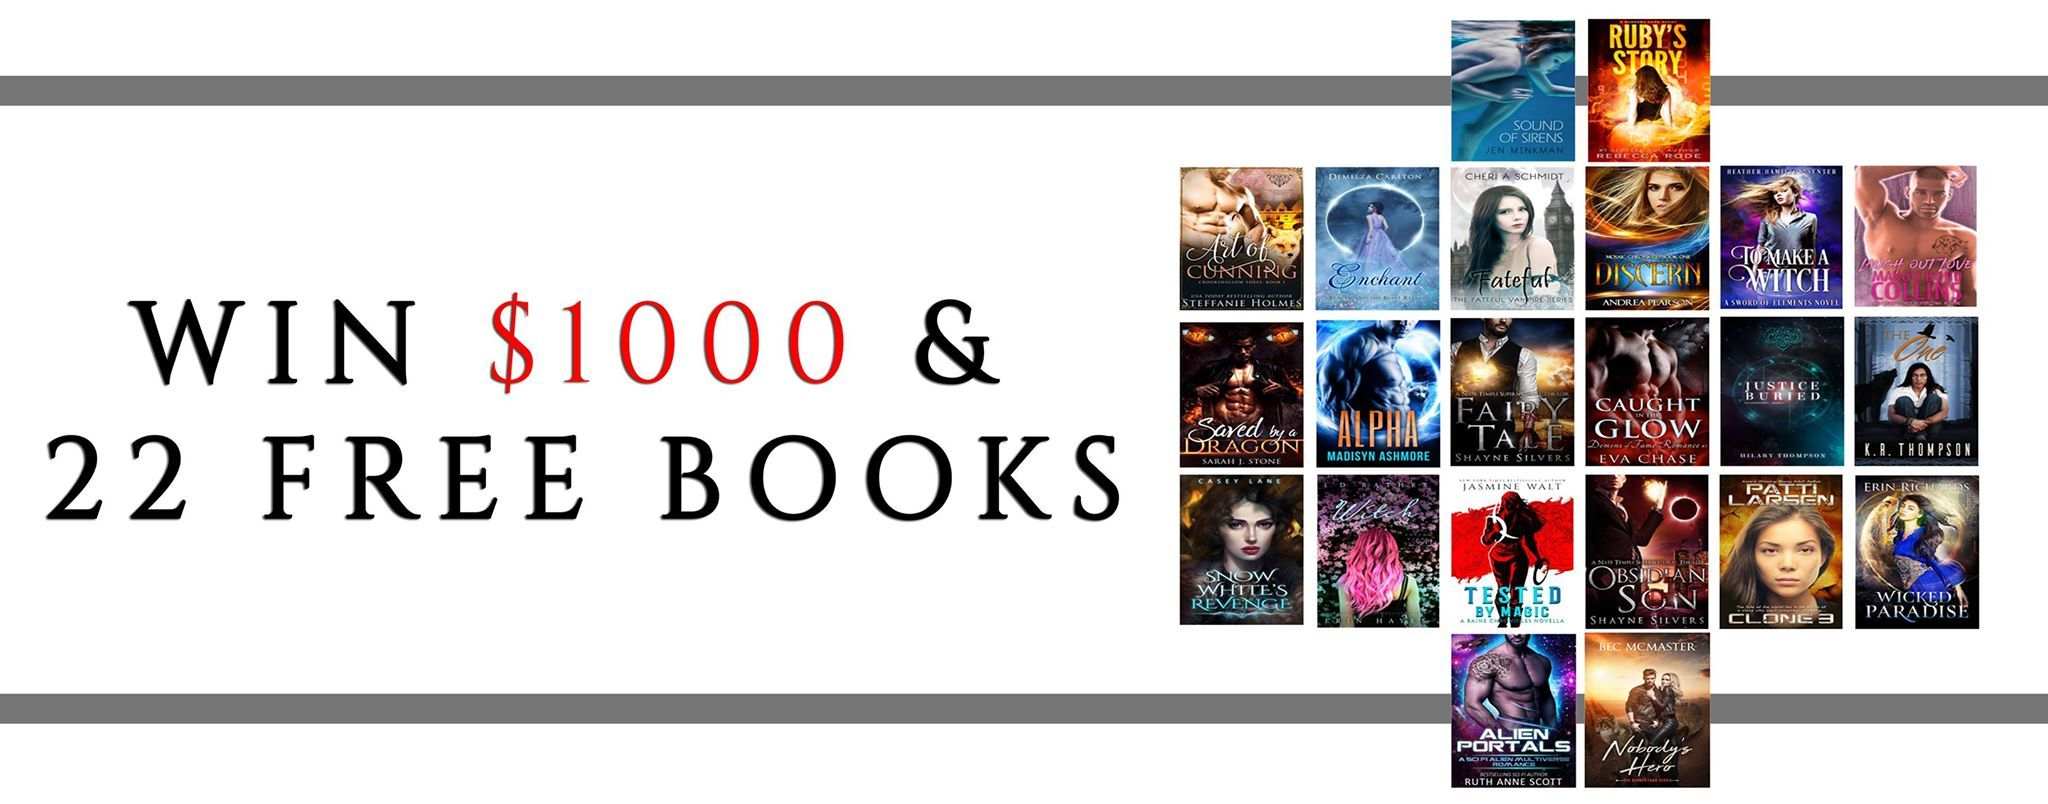 1,000 Amazon Gift Card and 22 Books Giveaway